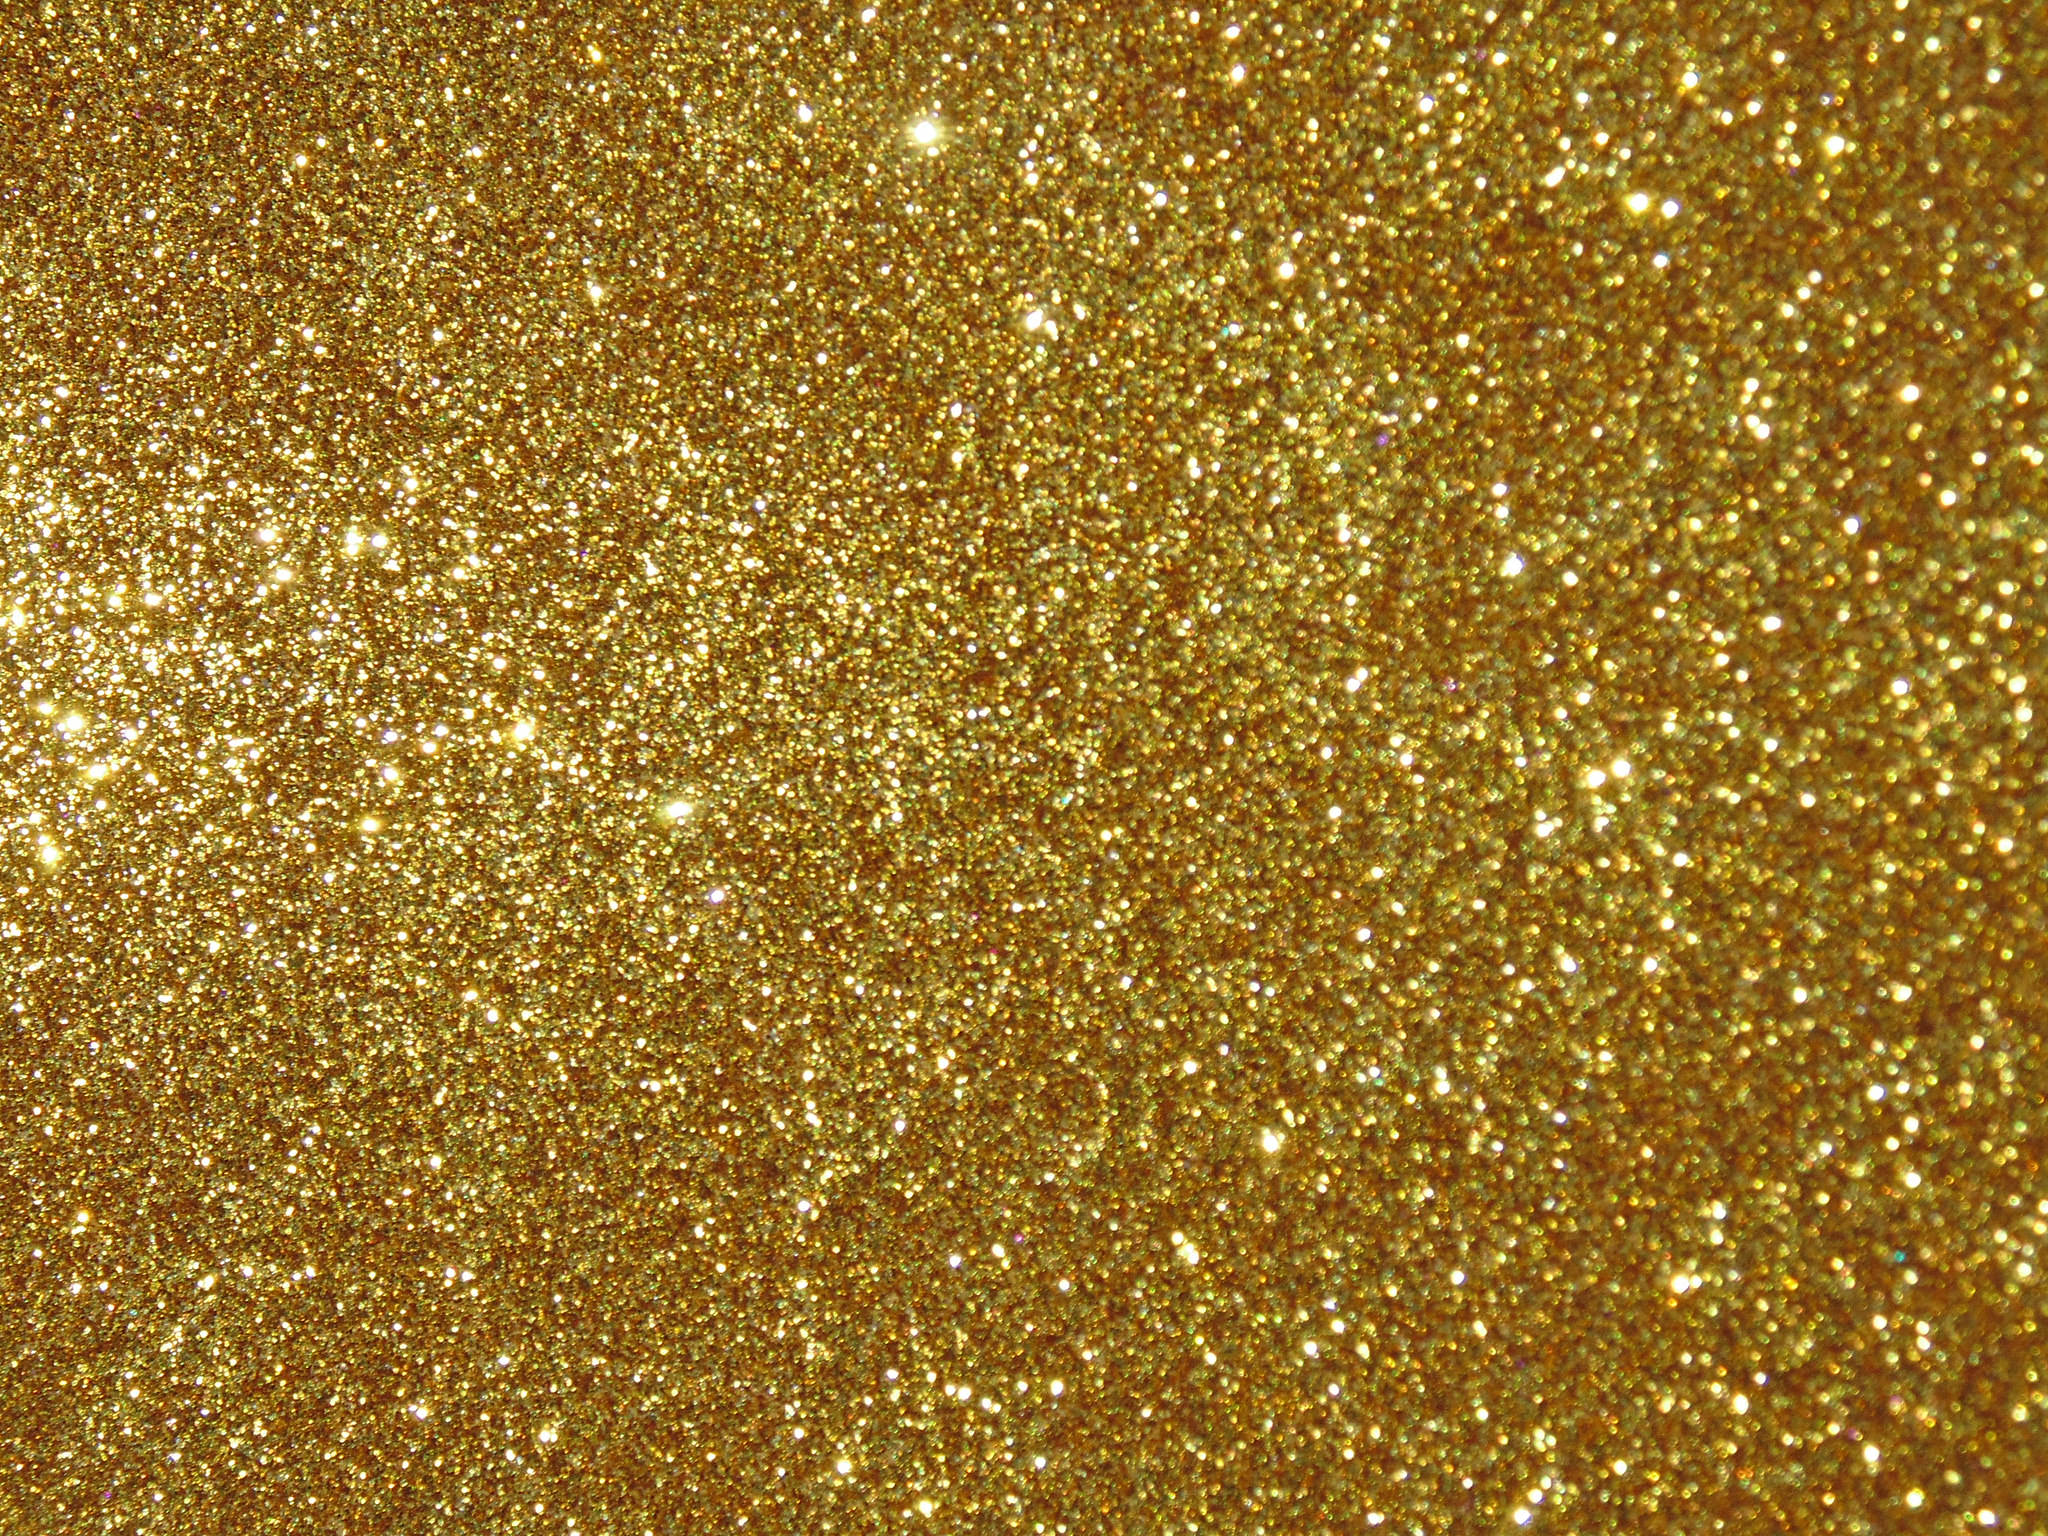 gold glitter wallpaper hd pixelstalk net. Black Bedroom Furniture Sets. Home Design Ideas